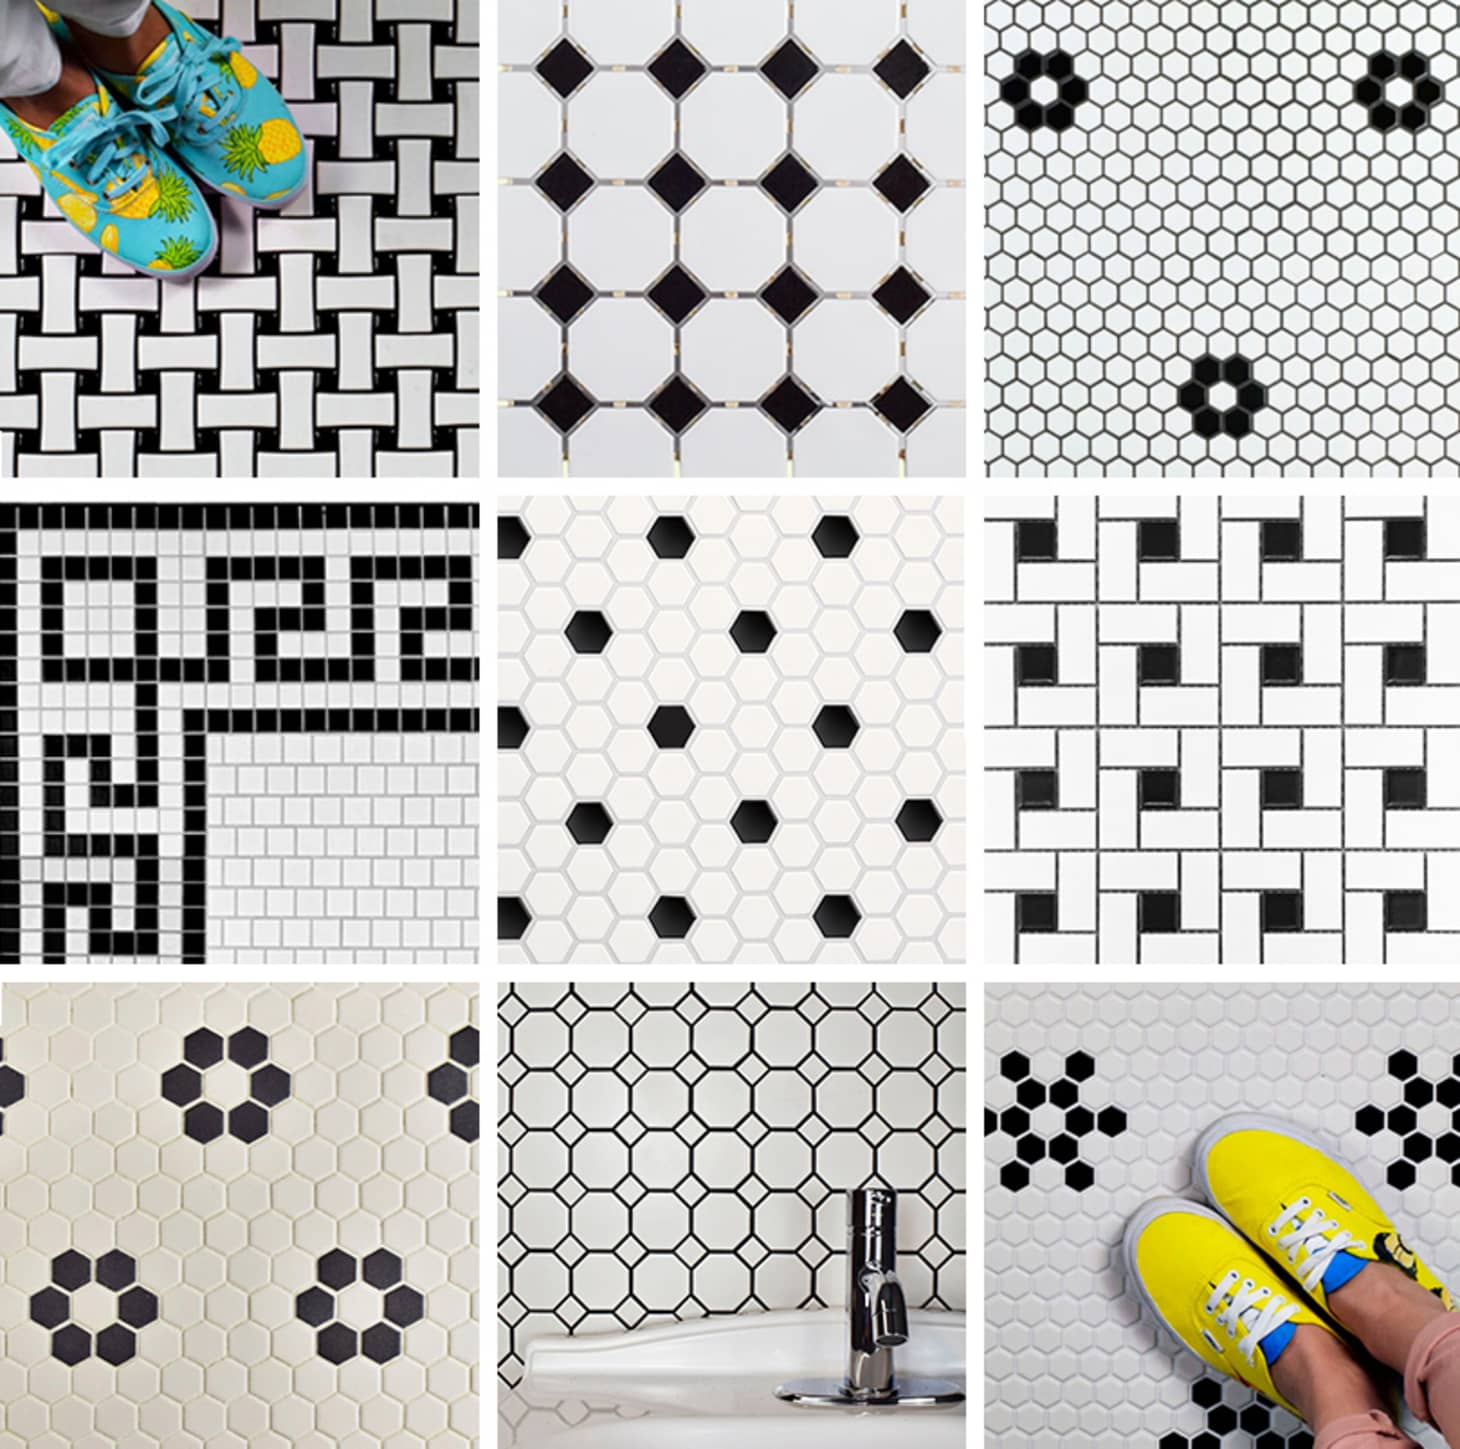 Our Favorite Vintage Mosaic Floor Tiles for Bathrooms ...